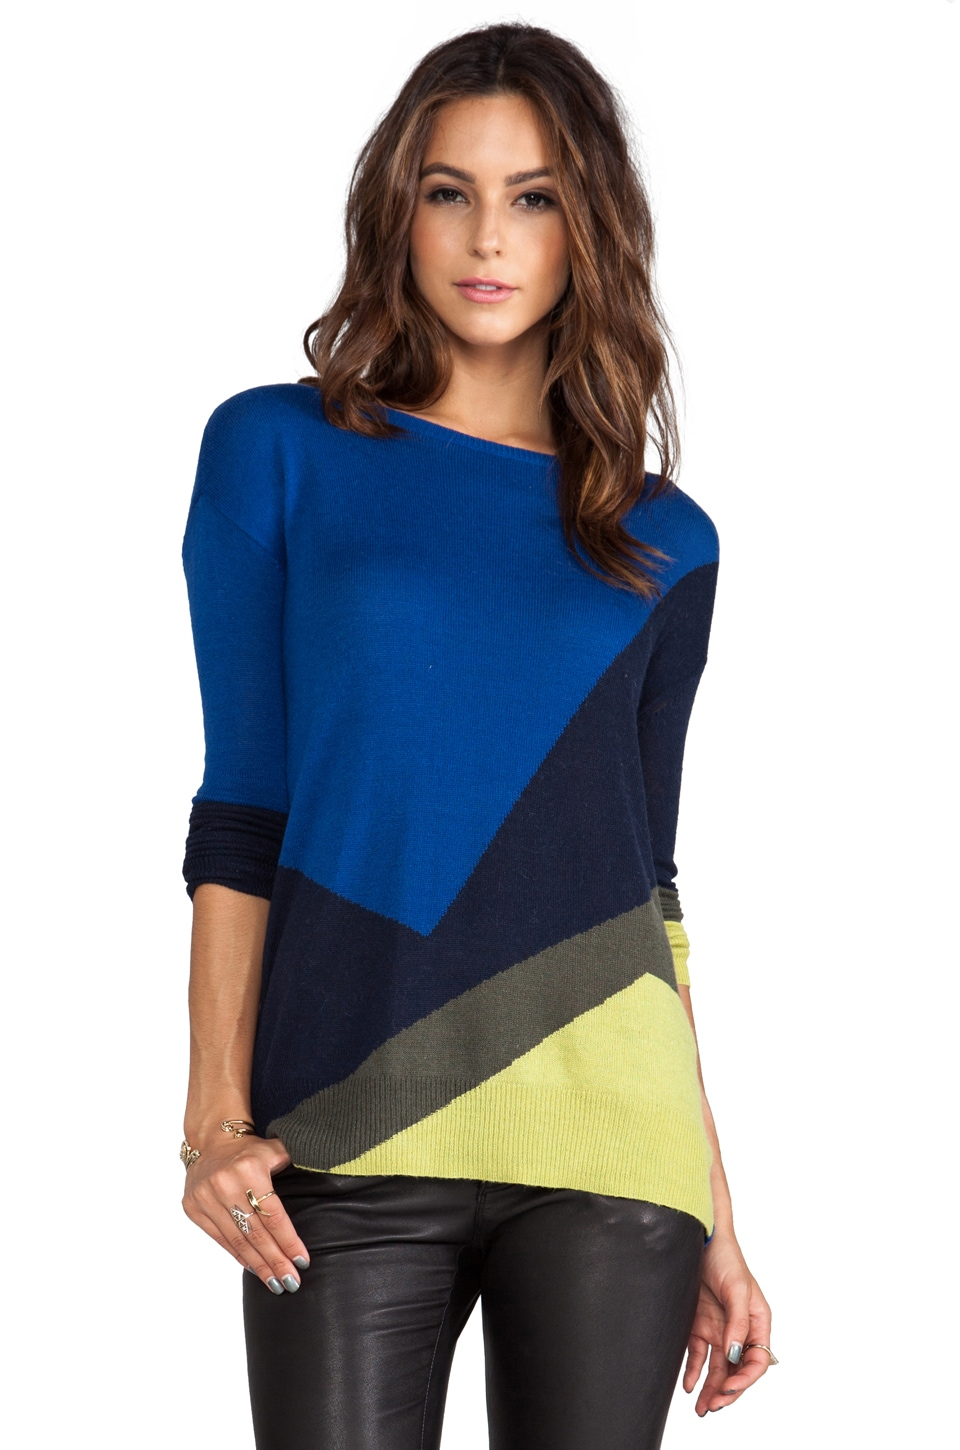 Halston Heritage Long Sleeve Intarsia Sweater in Multi